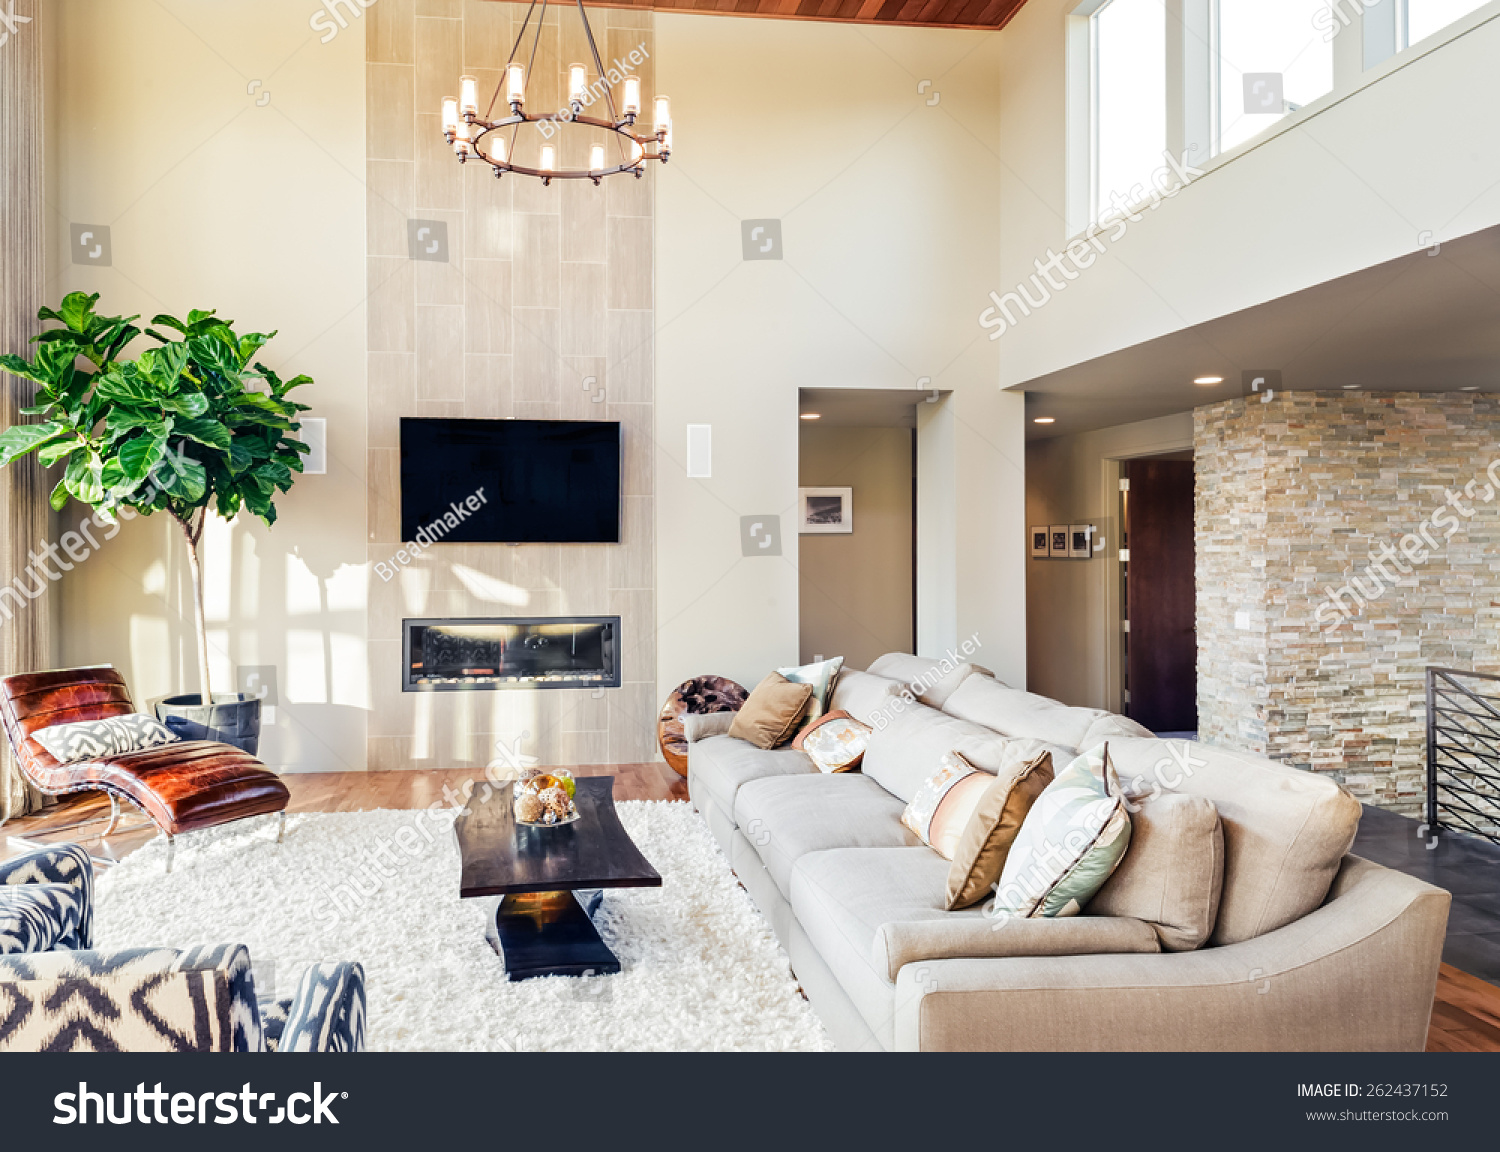 Beautiful living room hardwood floors tv stock photo 262437152 shutterstock - Beautiful rooms images ...